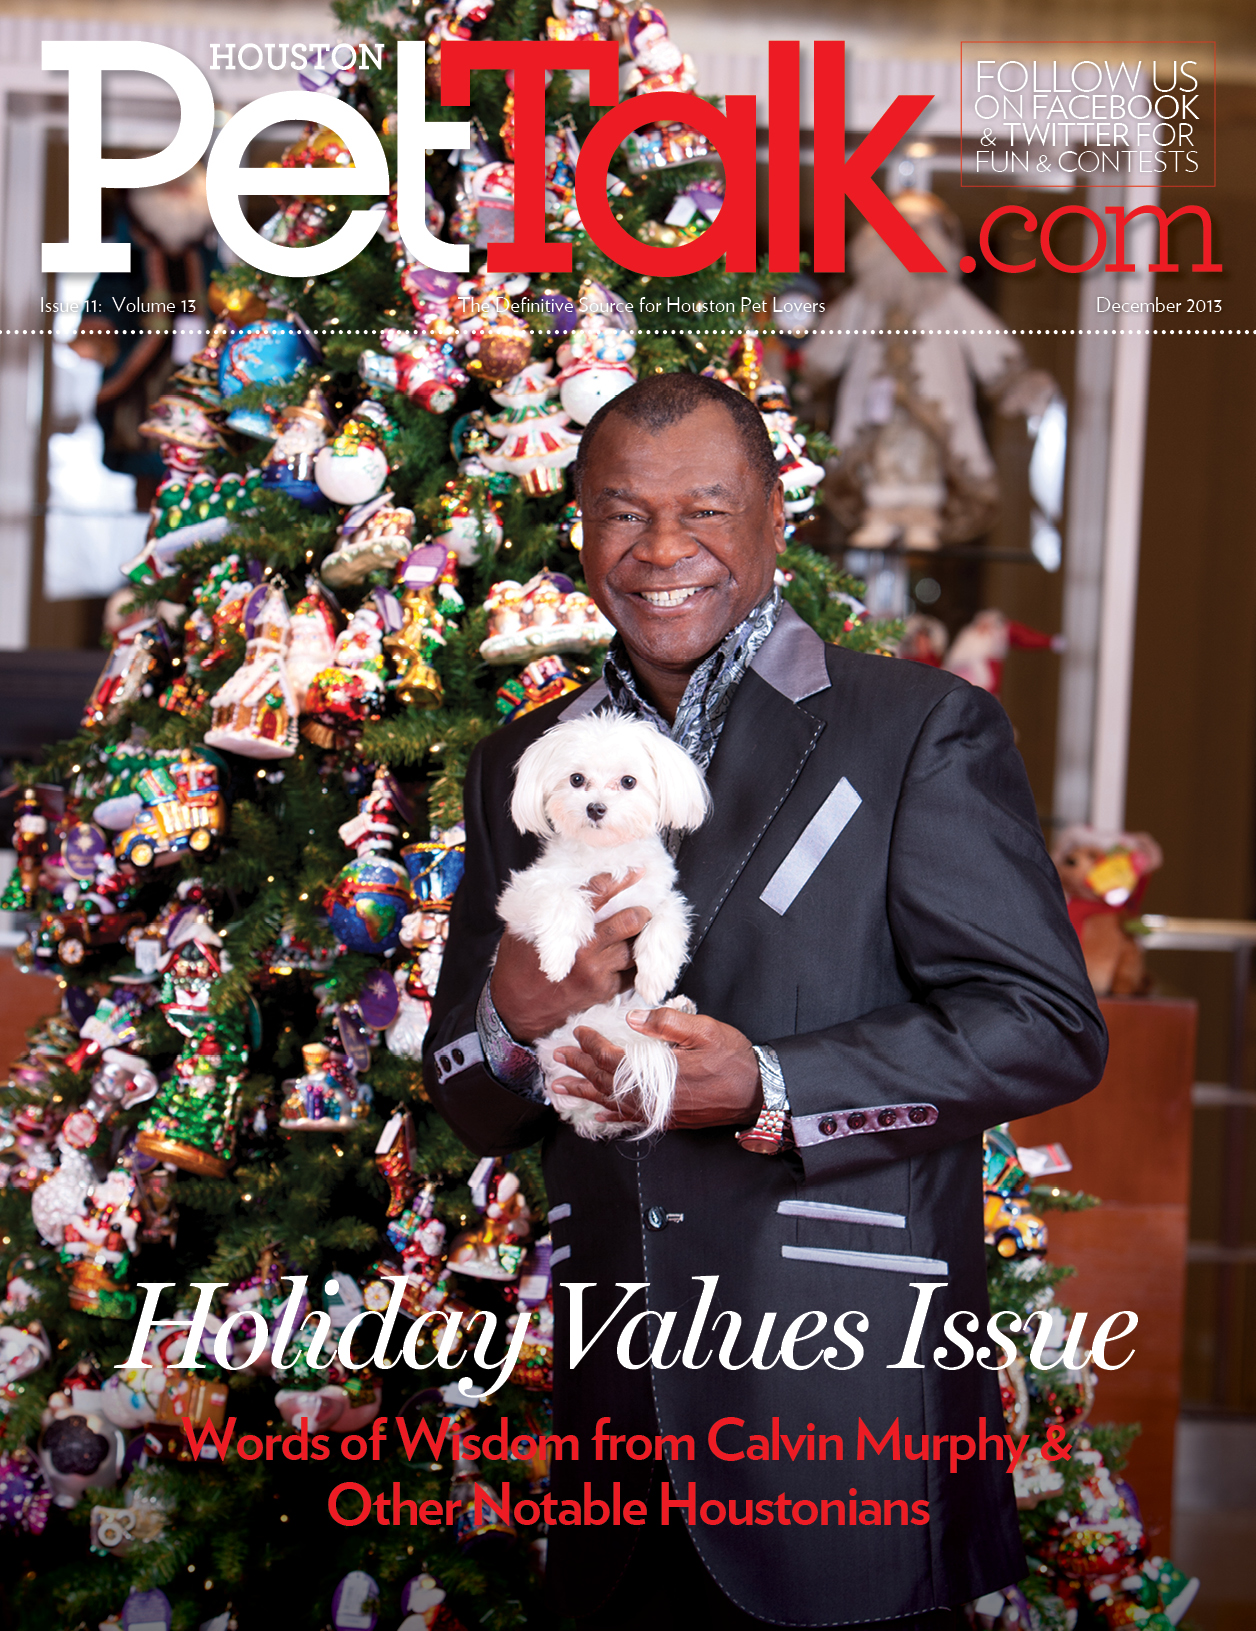 December 2013 Digital Issue of Houston PetTalk